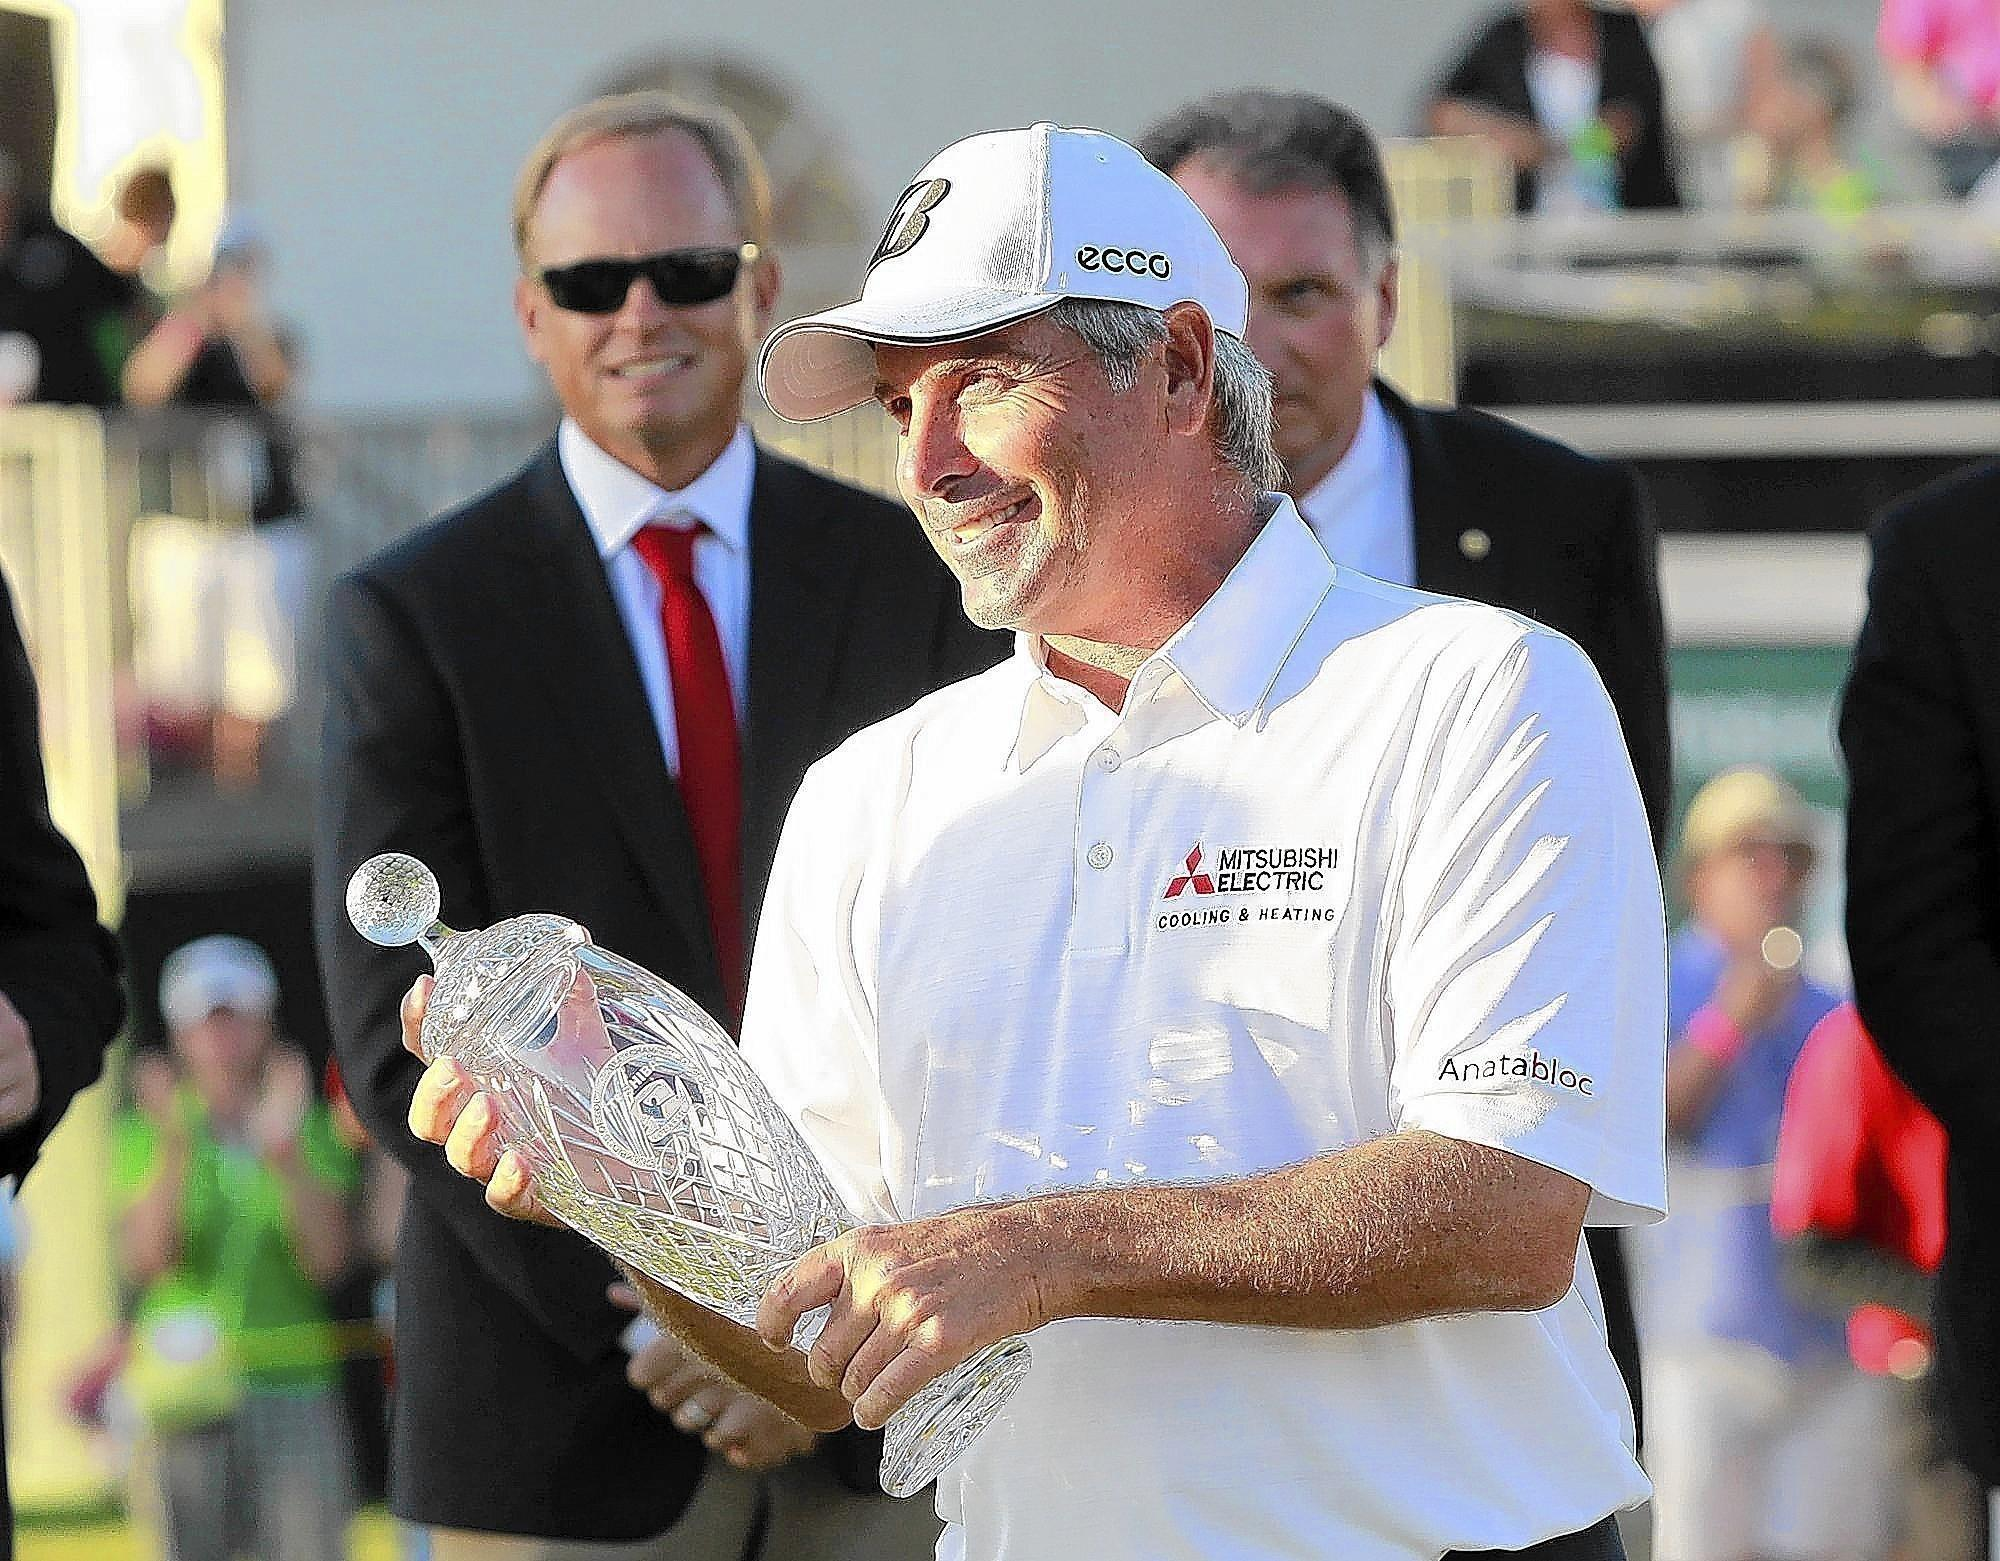 Fred Couples shows off the championship trophy after rising above a crowded leaderboard at the 2014 Toshiba Classic final round on Sunday.